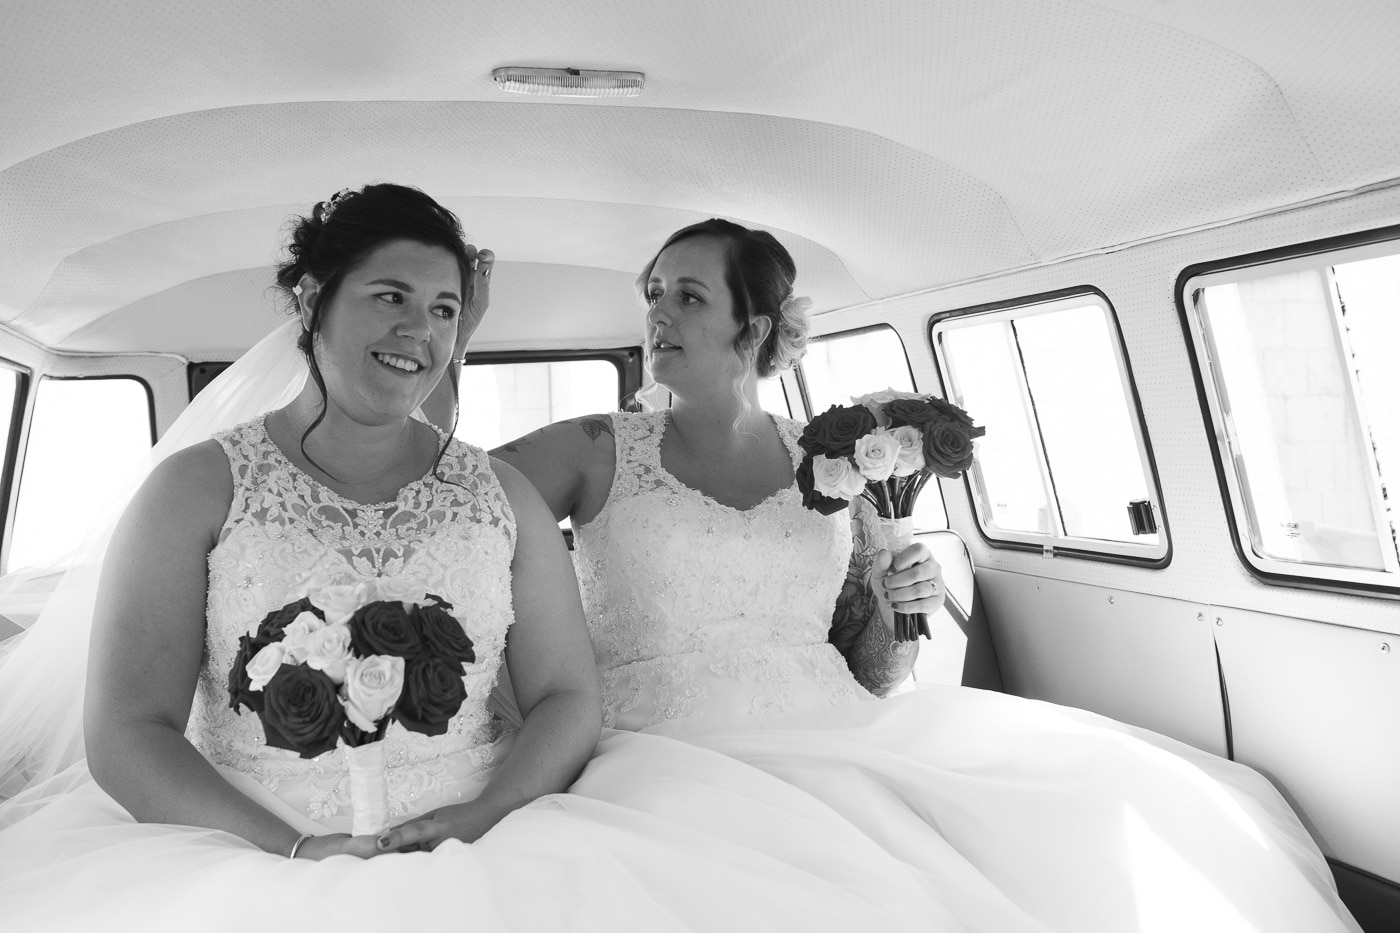 Brides in car together fixing hair for wedding by Joshua Wyborn photography